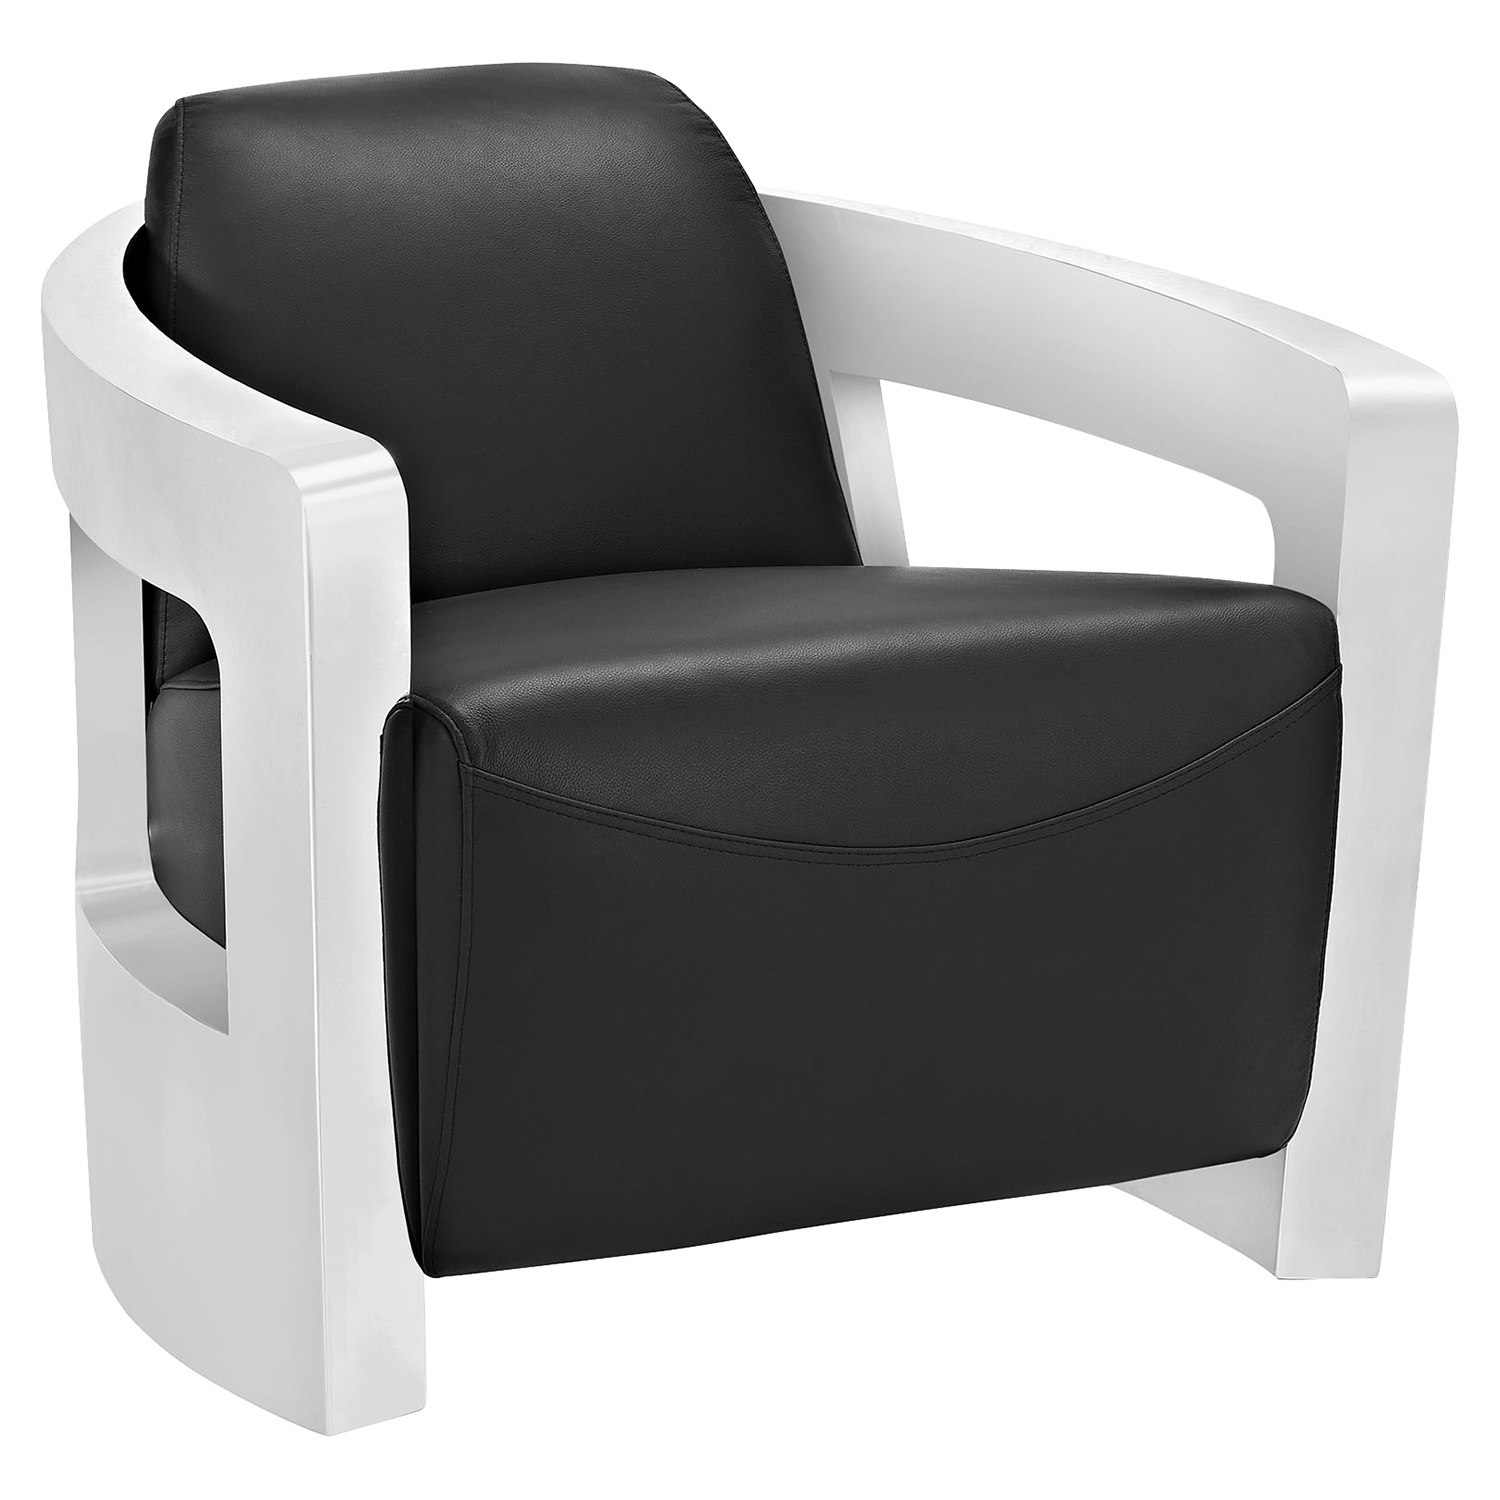 Trip Leather Lounge Chair - Black - EEI-2069-BLK